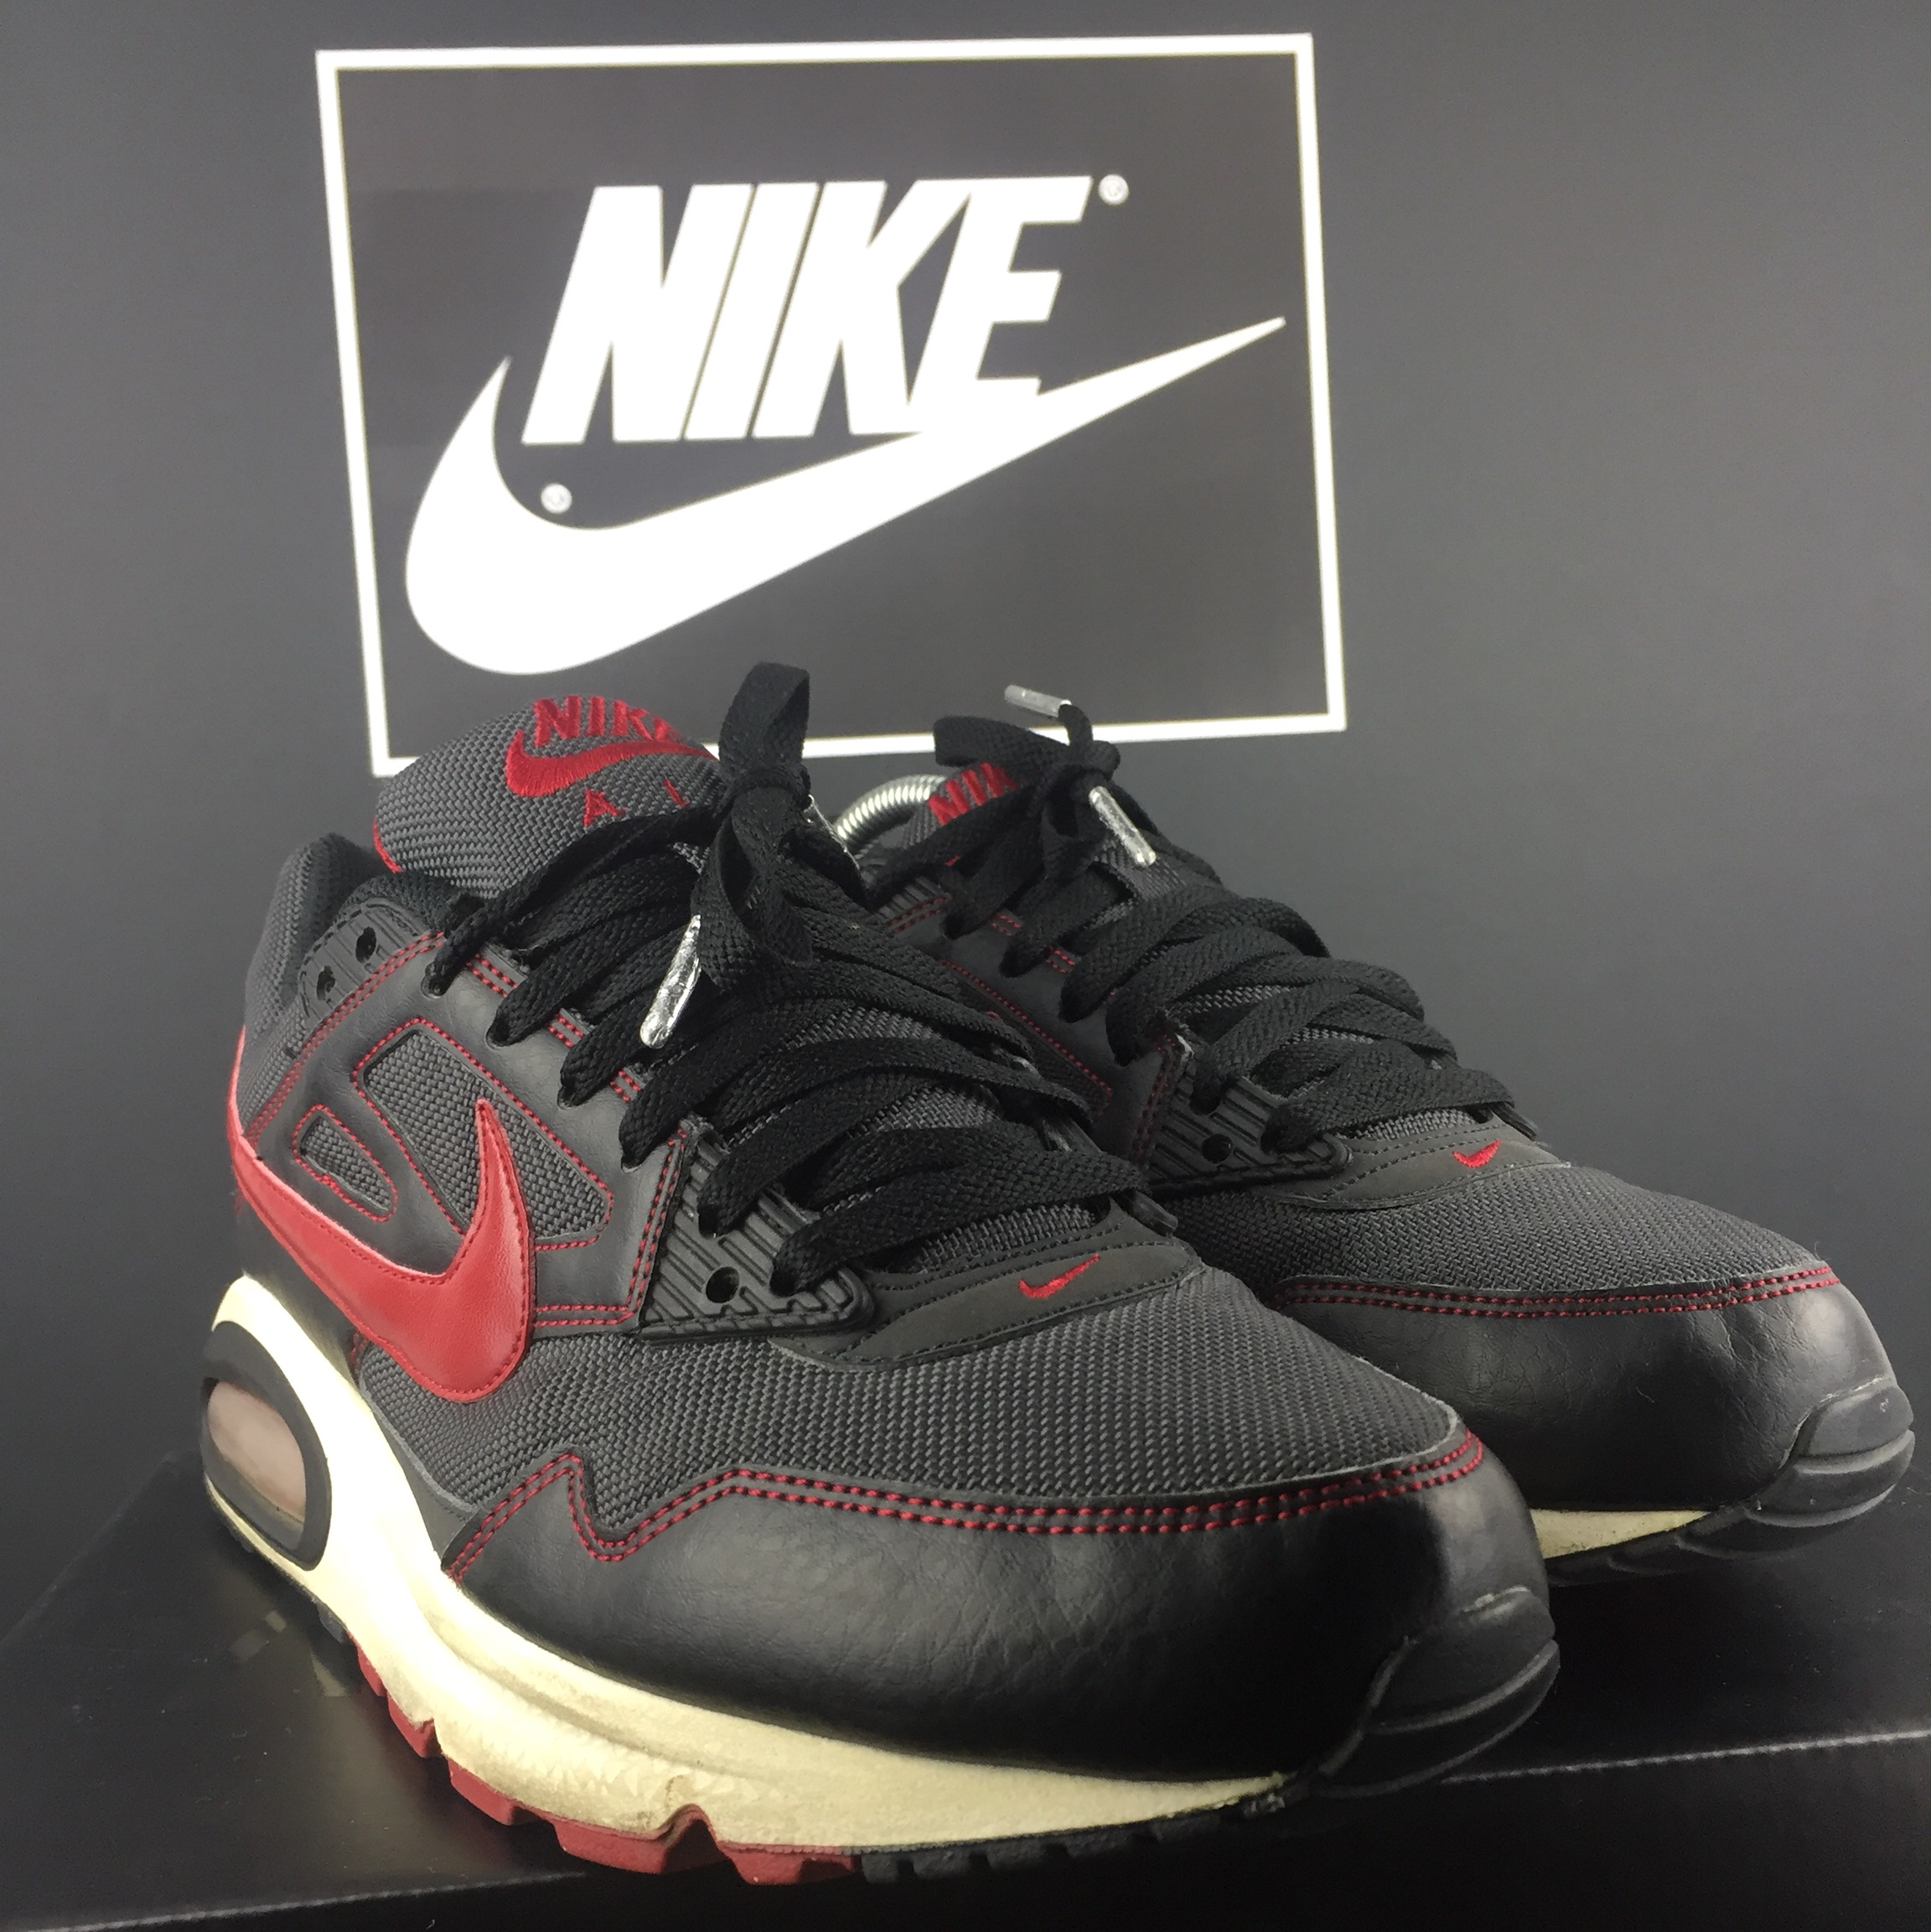 Nike Air Max Command In amazing nic Size 7.5 fit 8 Depop